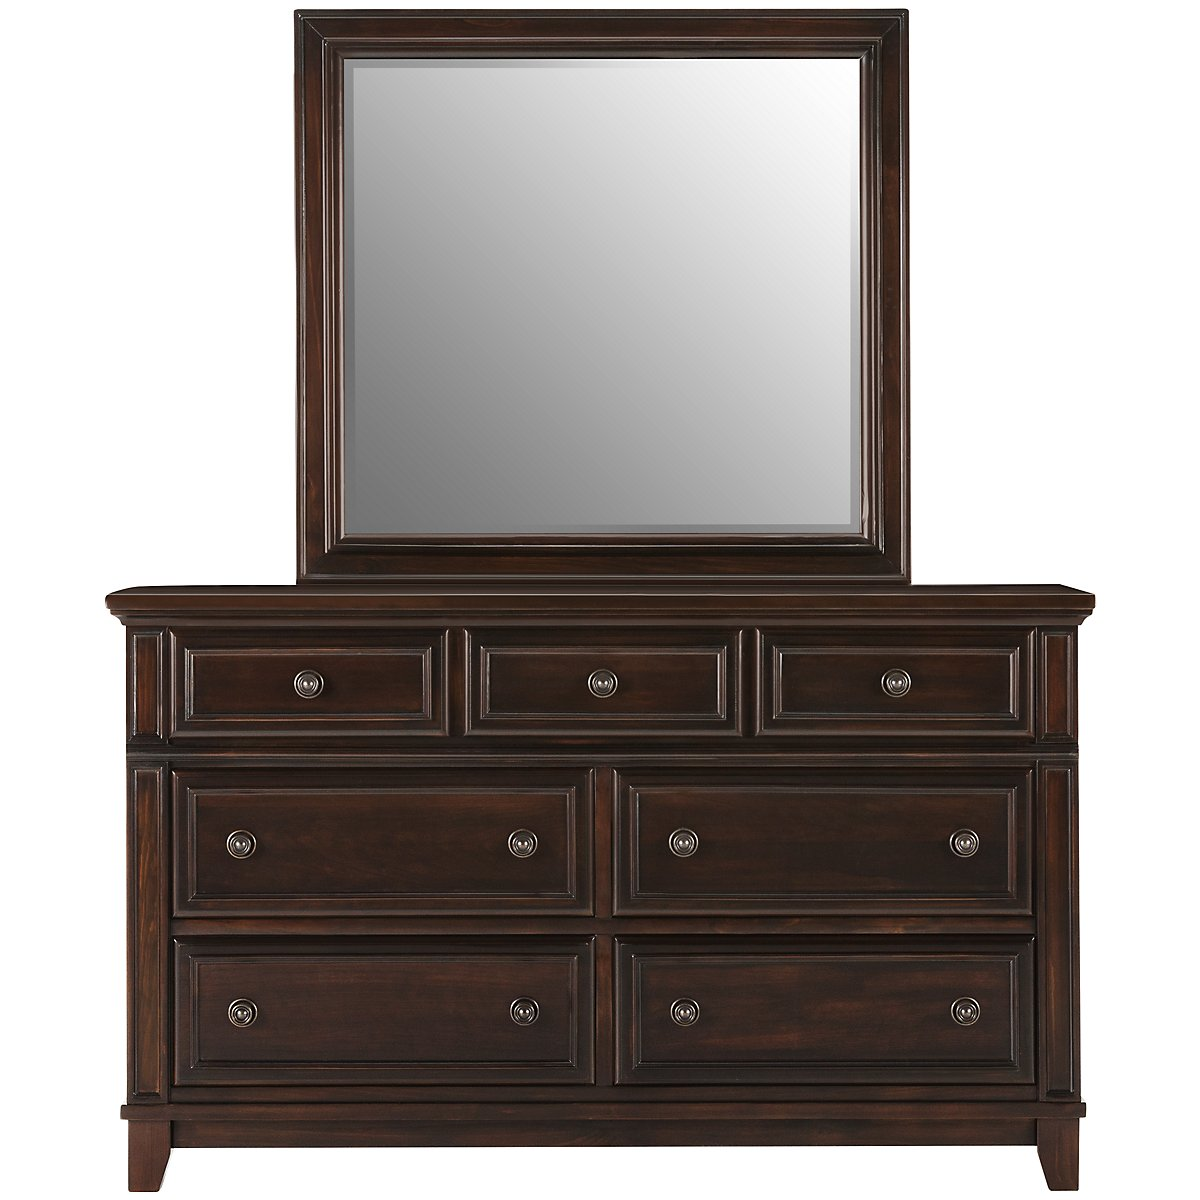 city furniture harwich dark tone dresser mirror